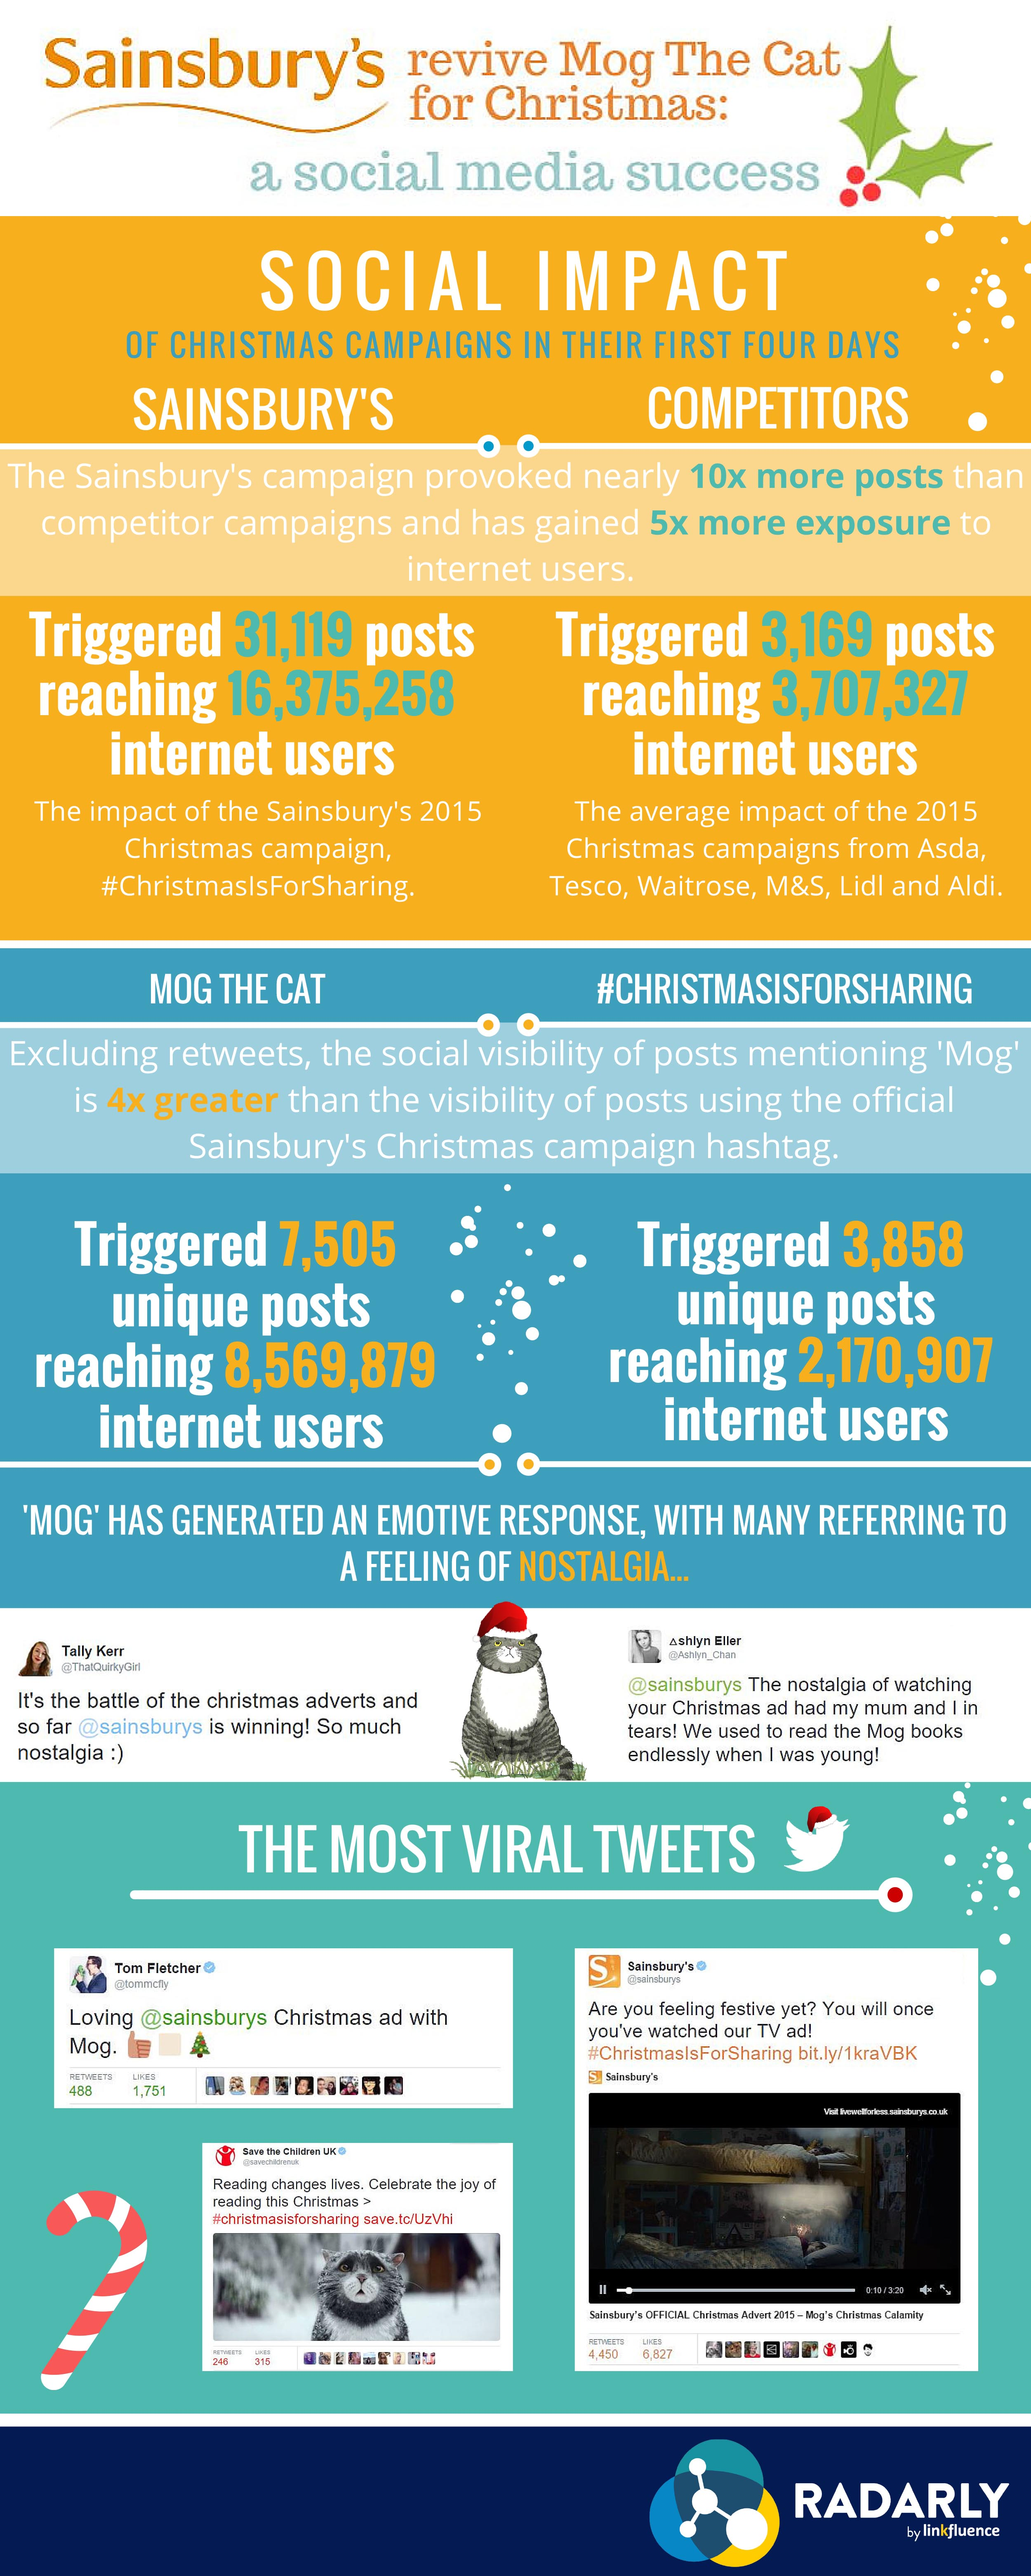 A detailed infographic presenting why Sainbury's 2015 Christmas campaign has been a huge social media success. Insights provided by Radarly, a social media monitoring tool.